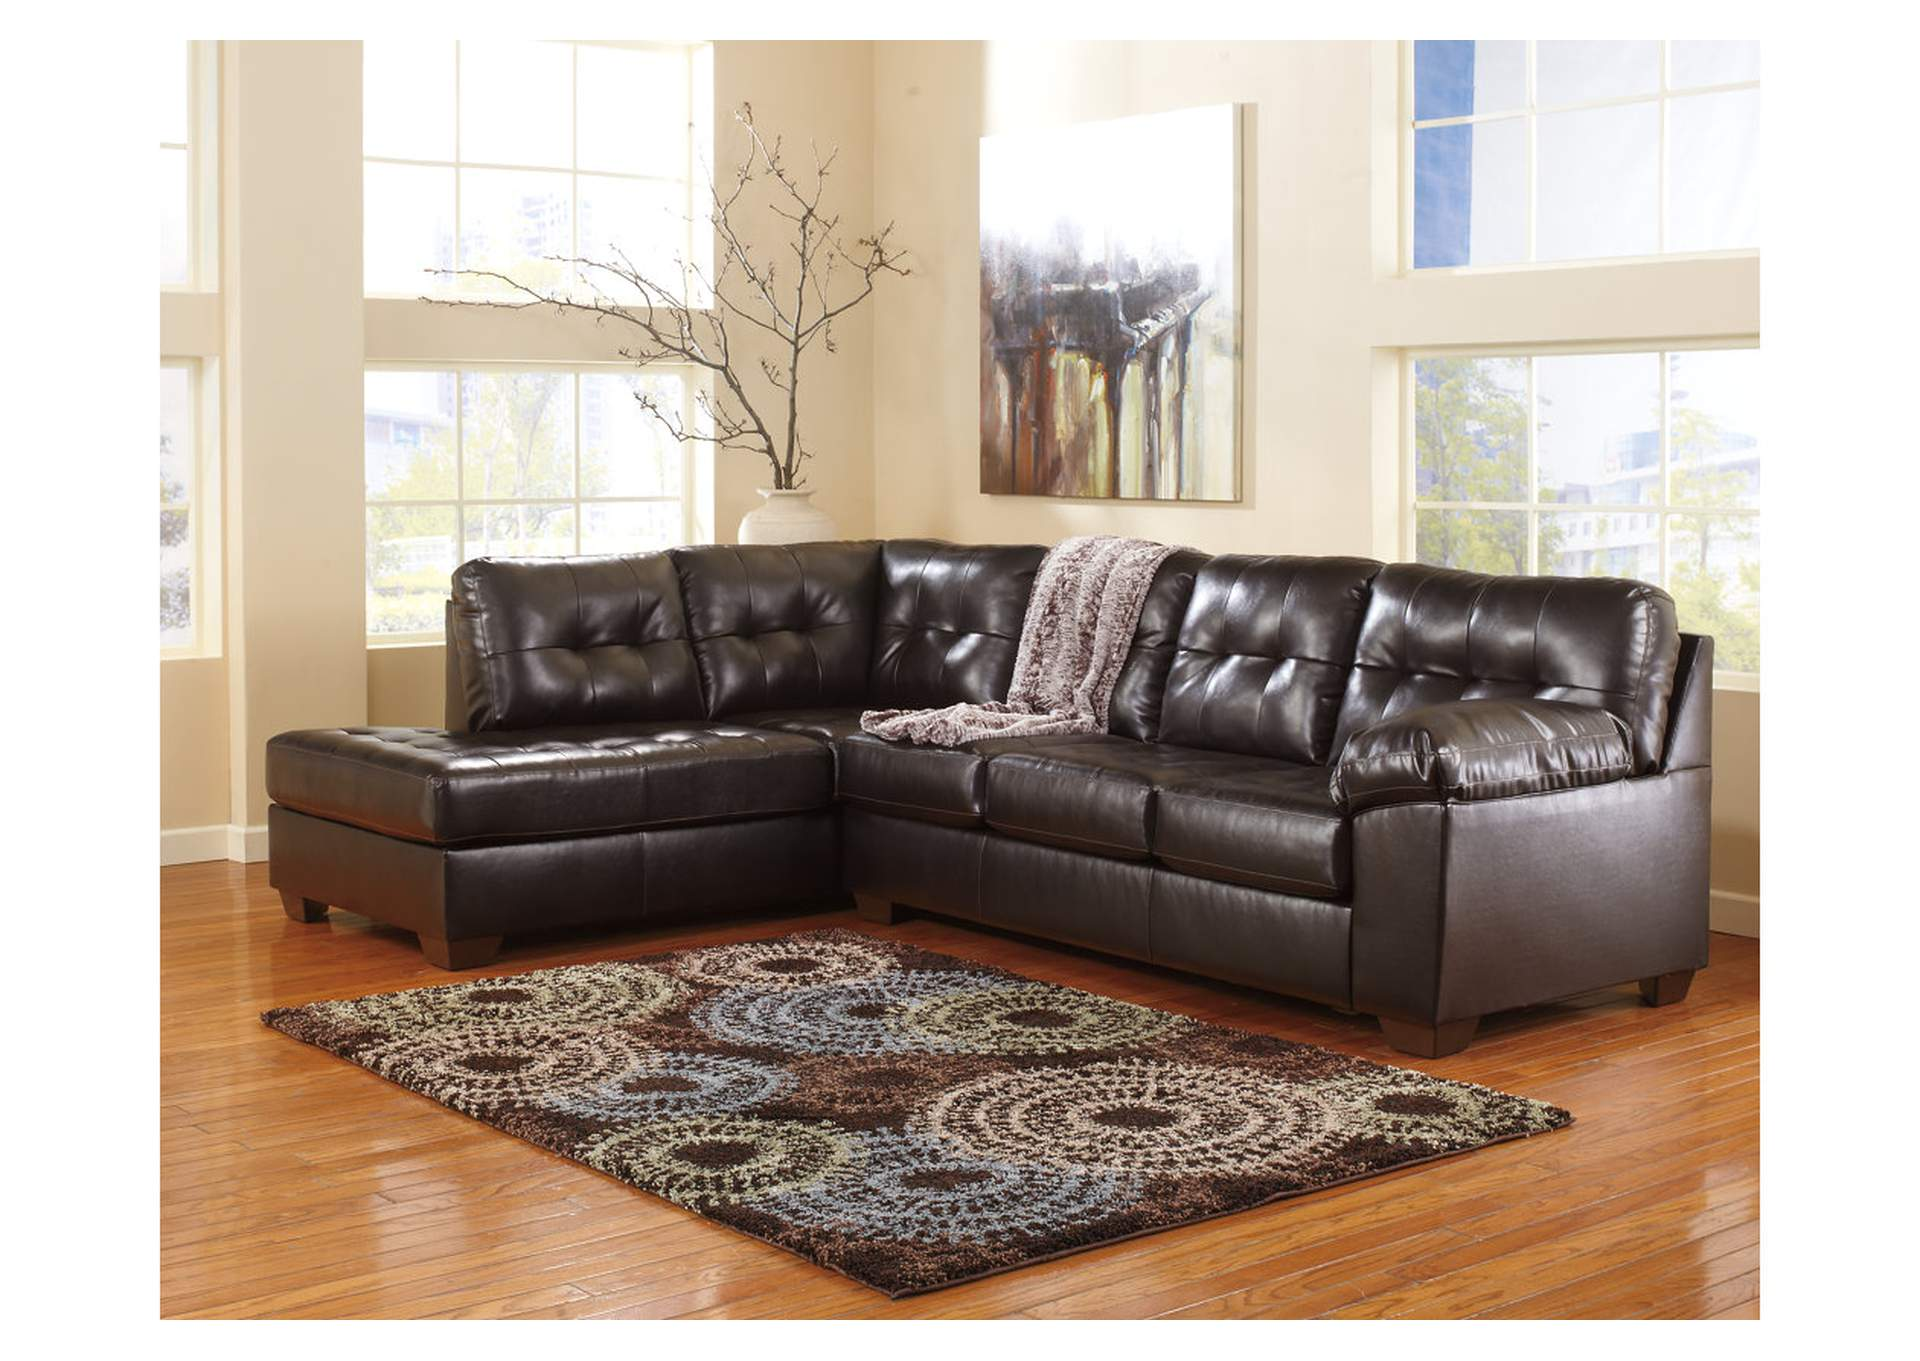 Alliston DuraBlend Chocolate Left Arm Facing Chaise End Sectional,Signature Design By Ashley